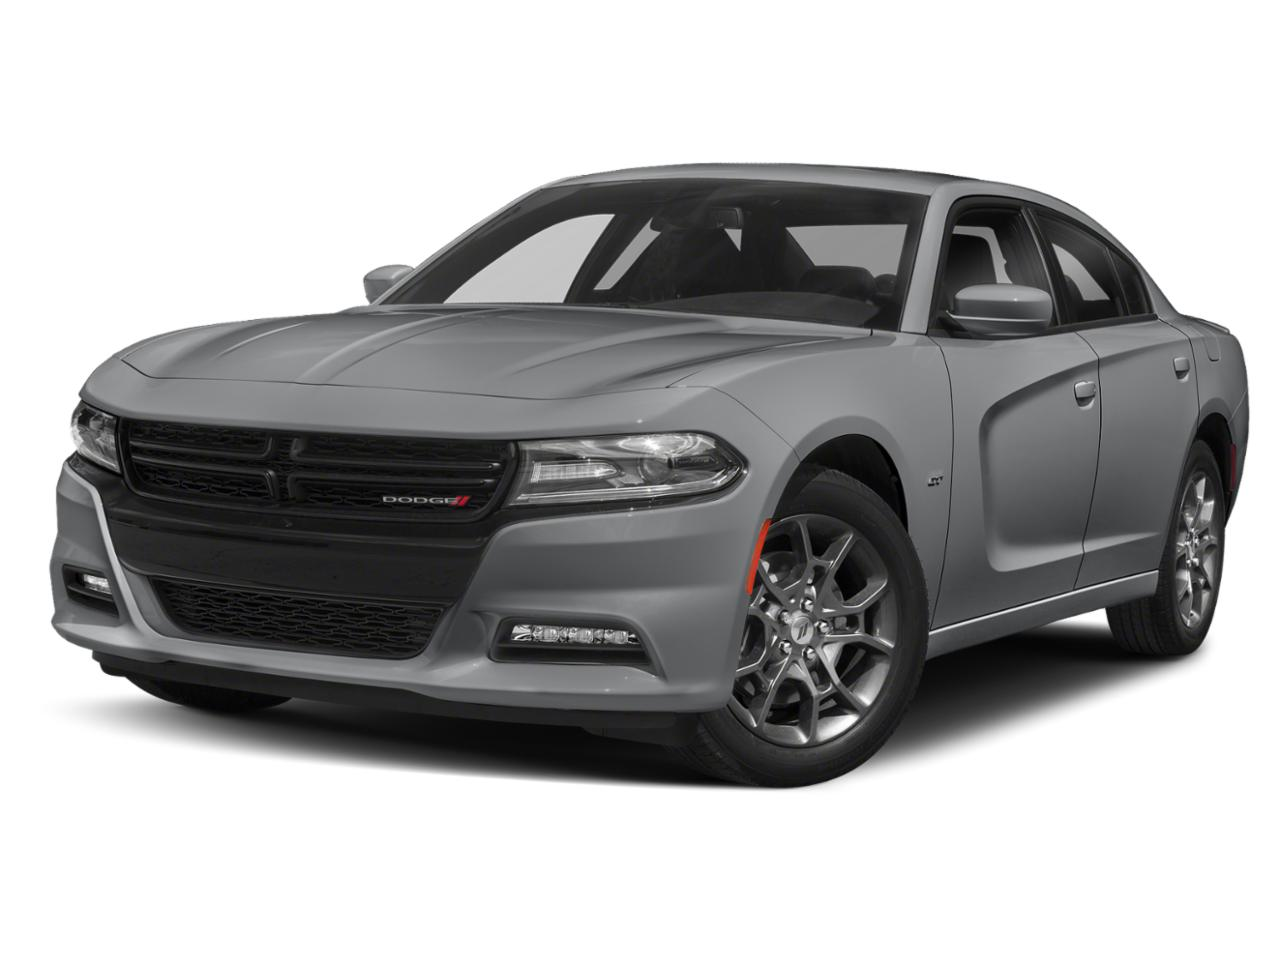 2018 Dodge Charger Vehicle Photo in NEENAH, WI 54956-2243